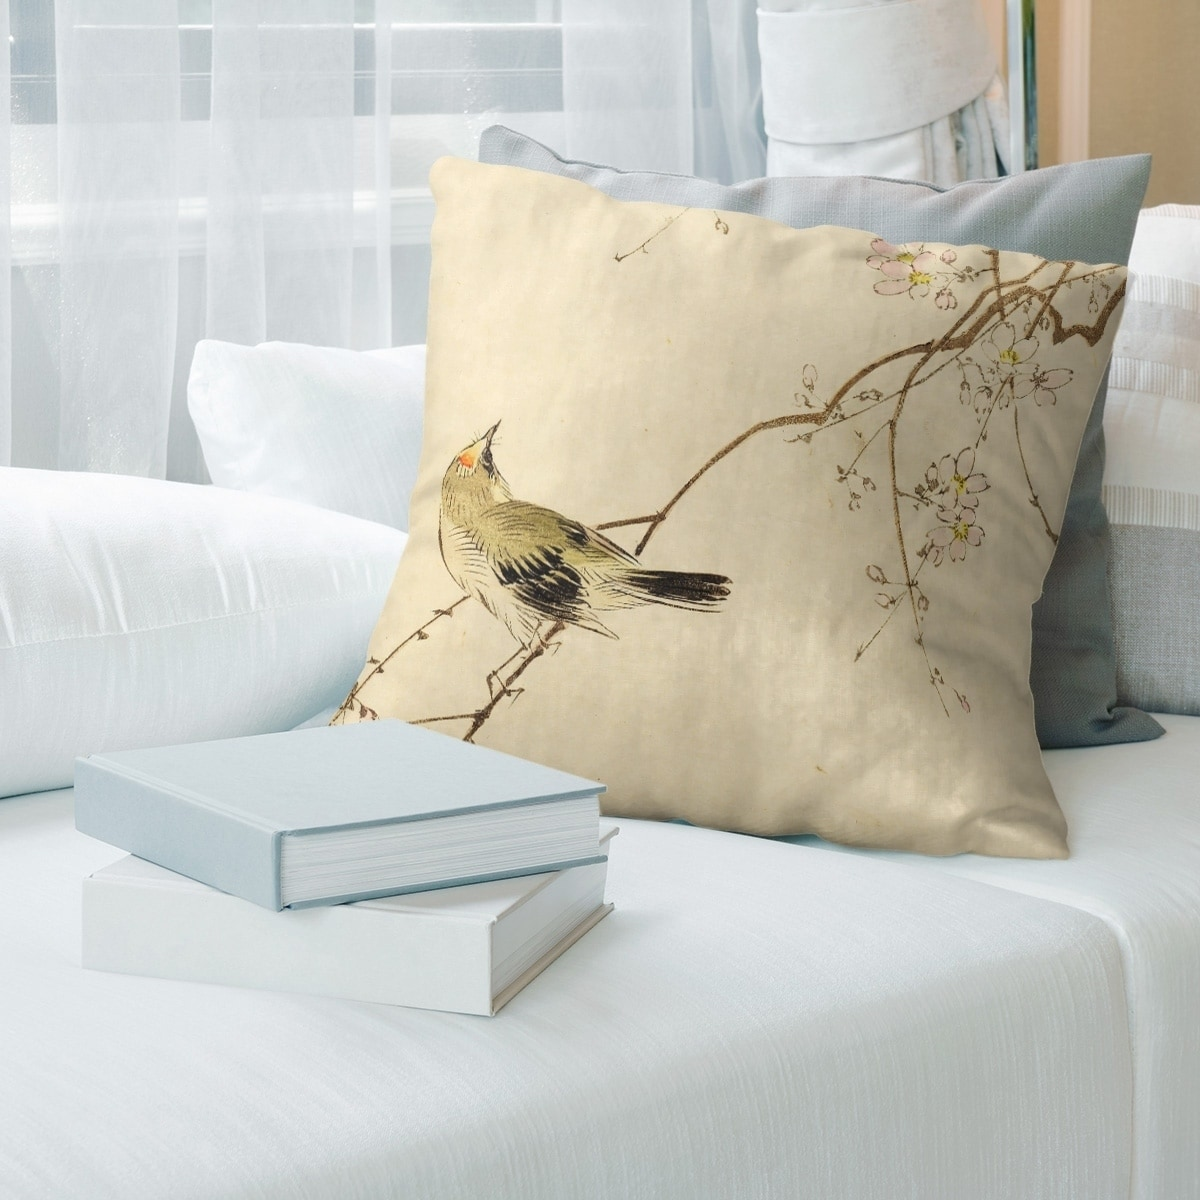 Porch Den Keito Sato Vintage Japanese Bird And Blossoms Watercolor Throw Pillow On Sale Overstock 28274791